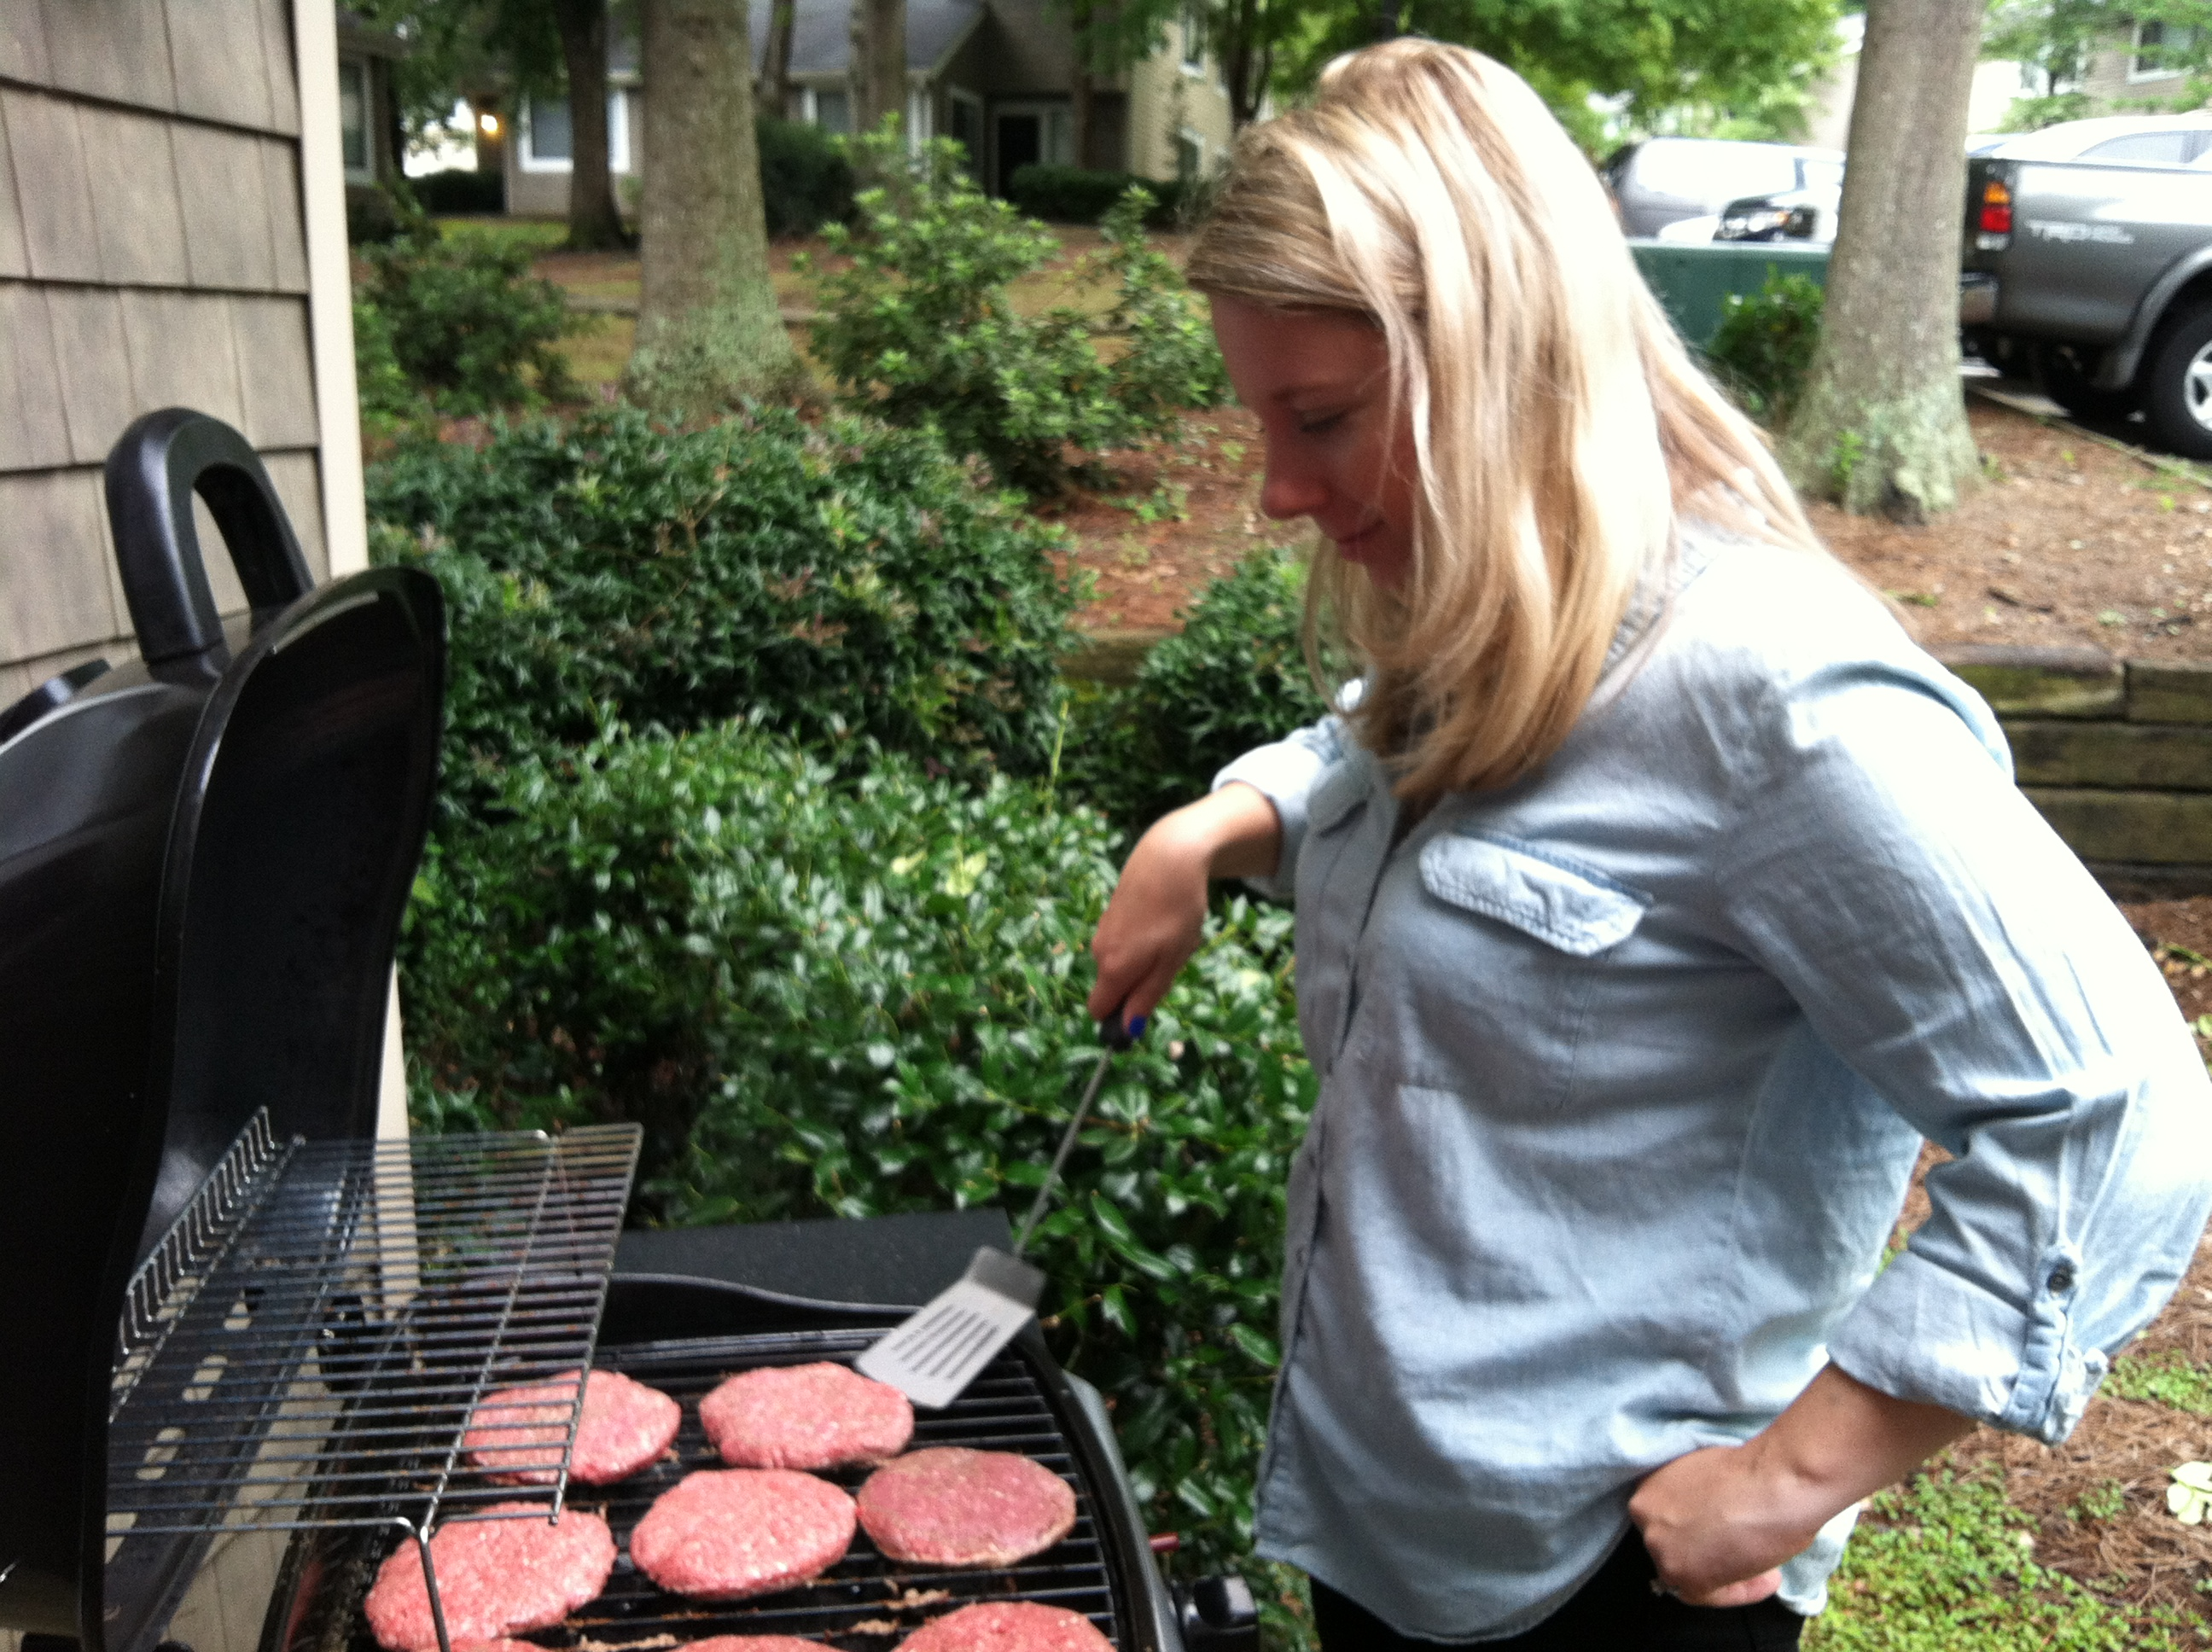 Grill master at work.